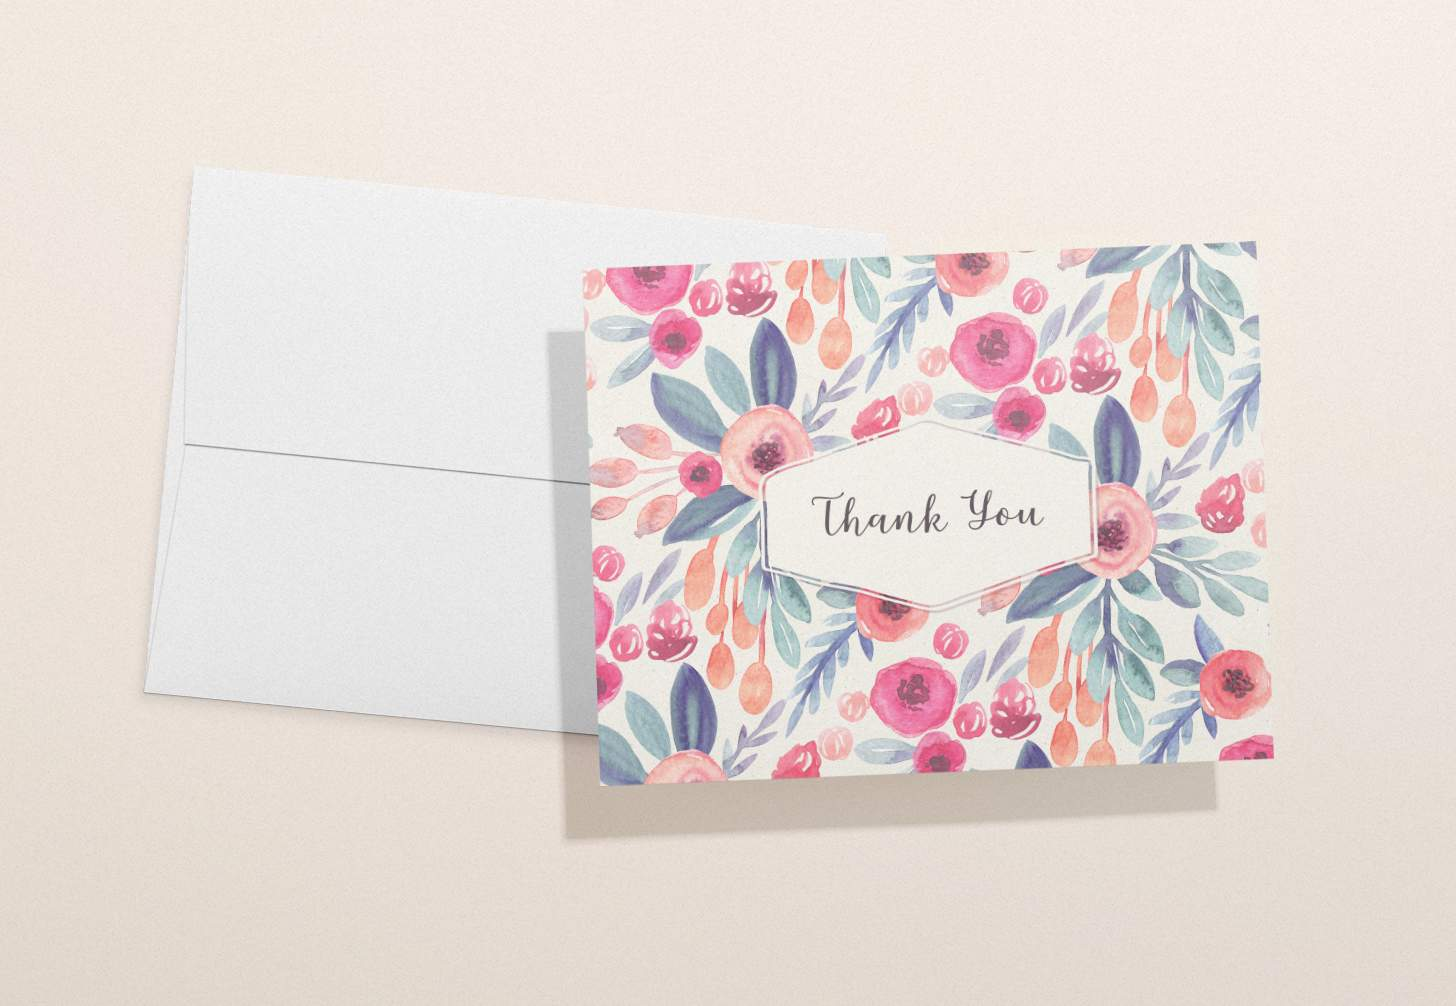 Rose colored floral card with white envelope